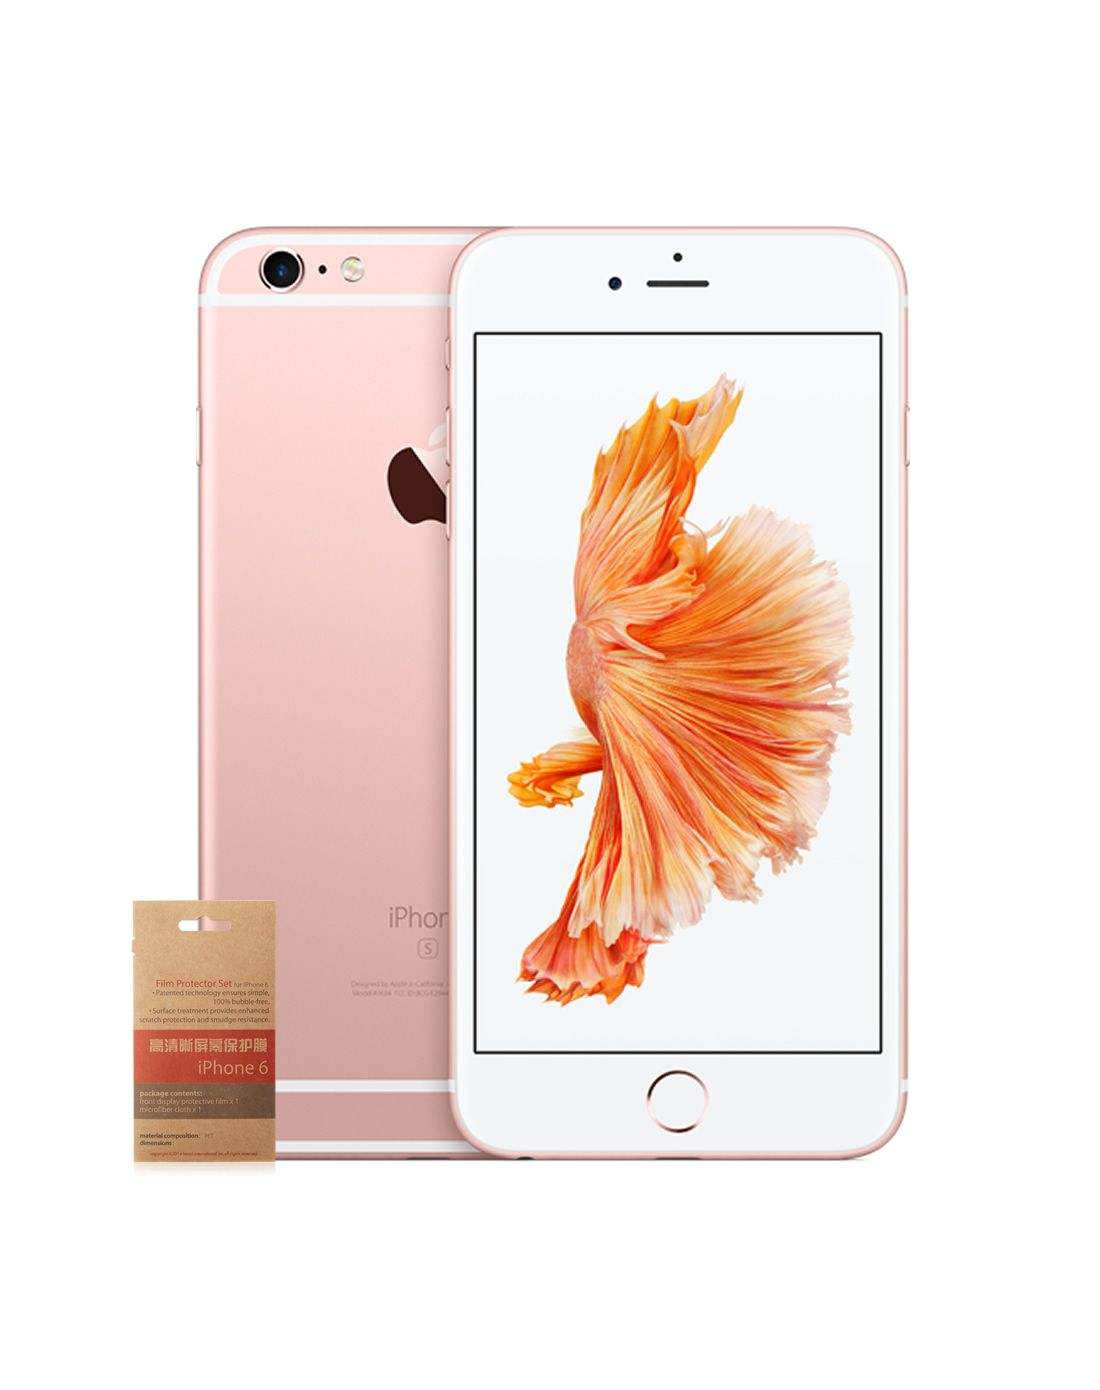 【新品手机】iPhone6s/iPhone6sPlus16G/64苹果群v新品图片